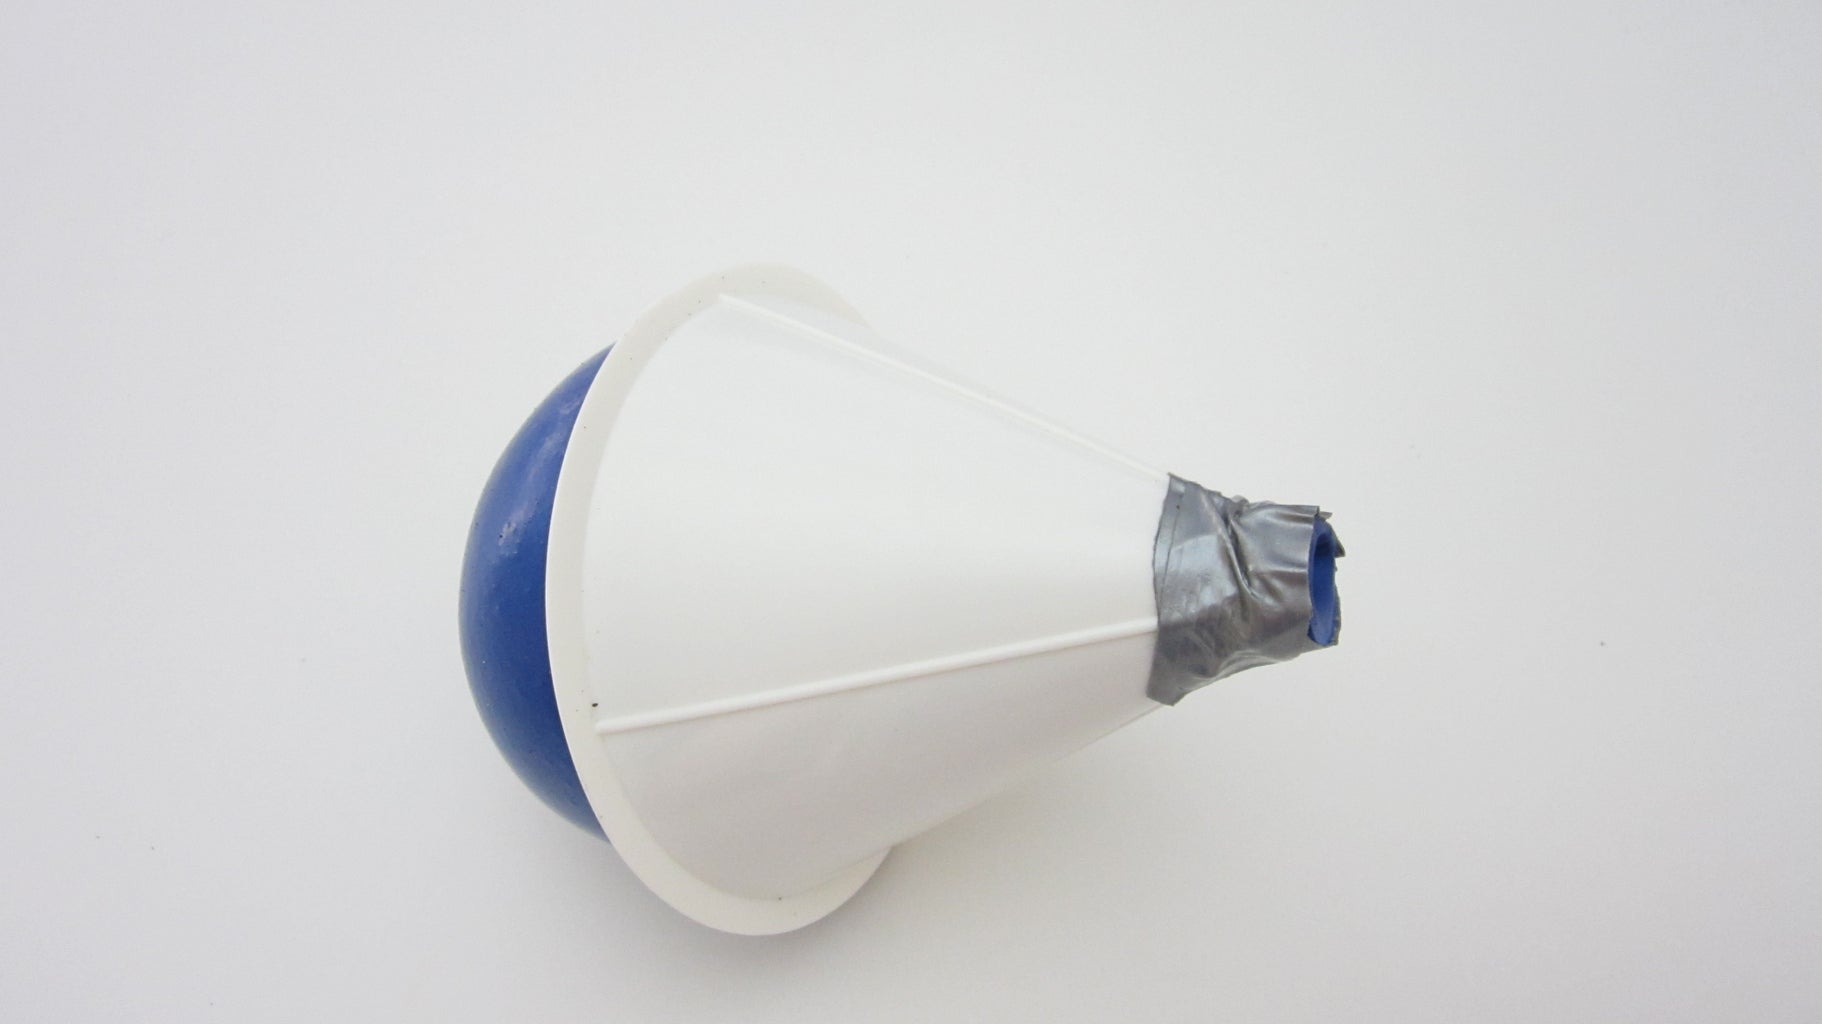 Attach the Balloon to the Funnel